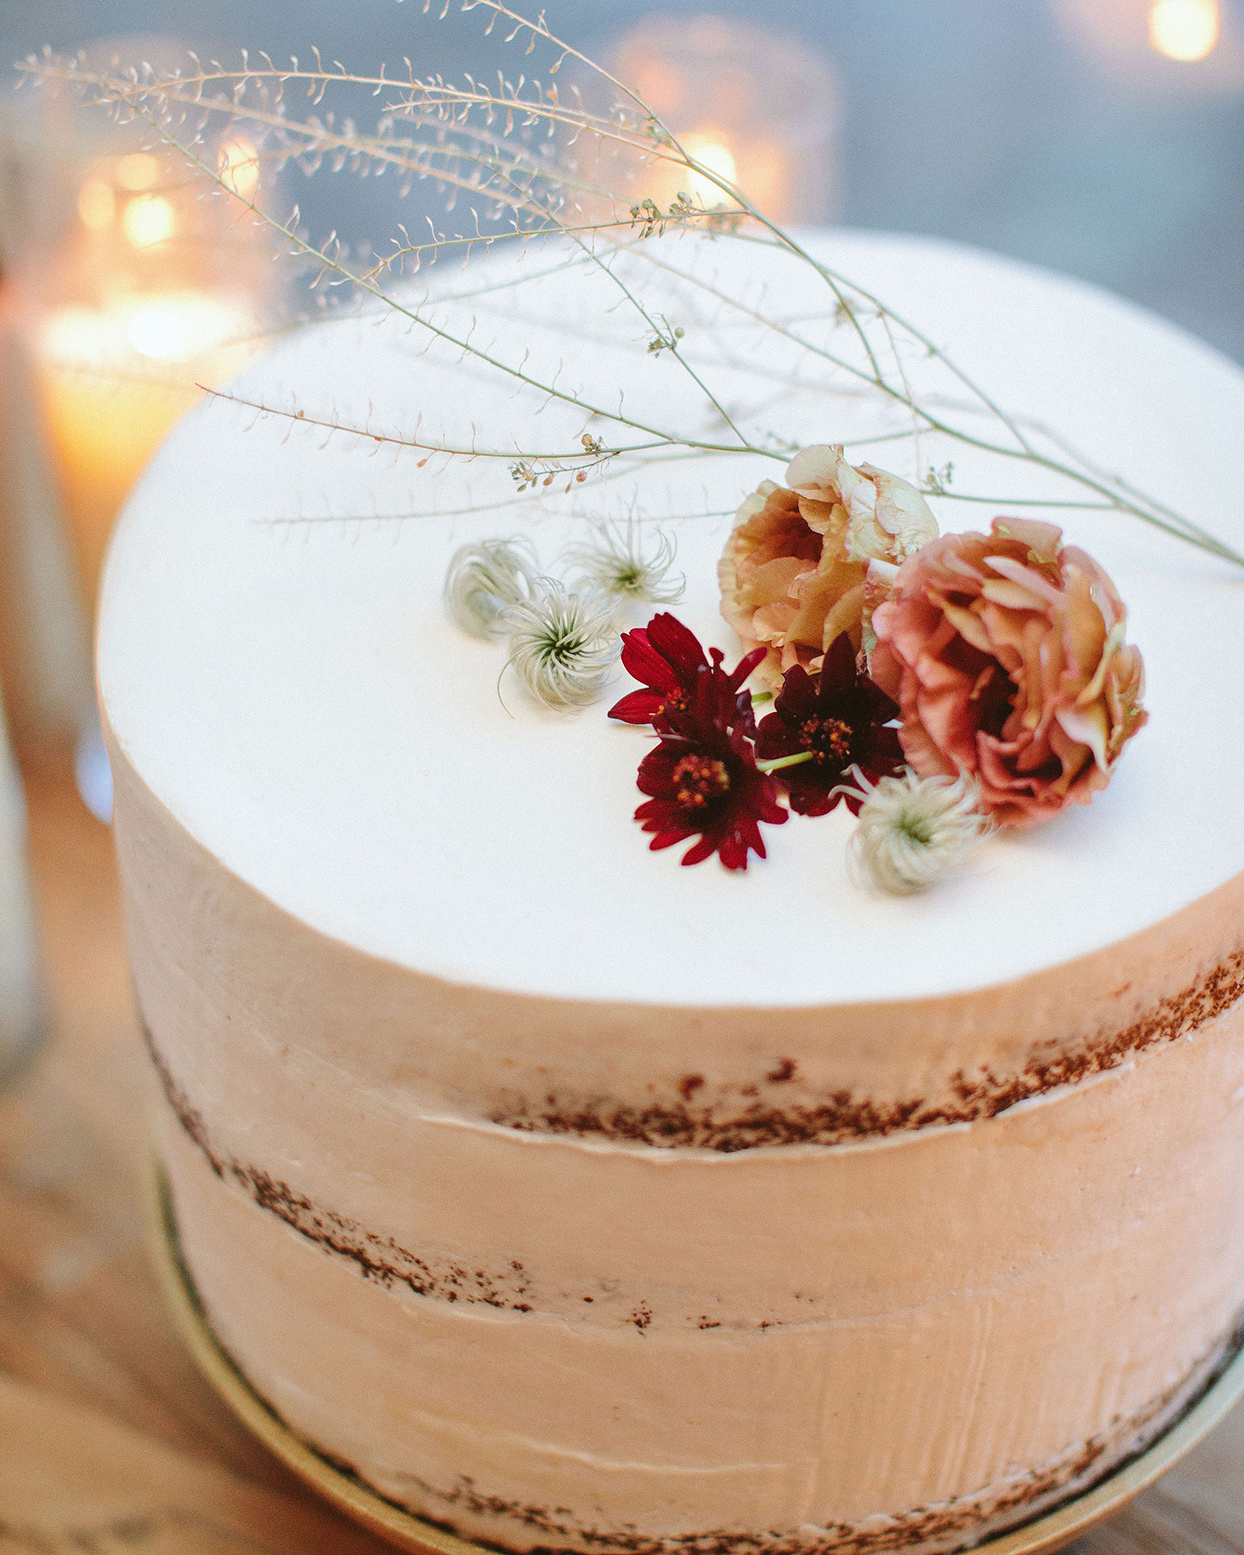 clare tim simple nearly naked wedding cake with red tones flowers